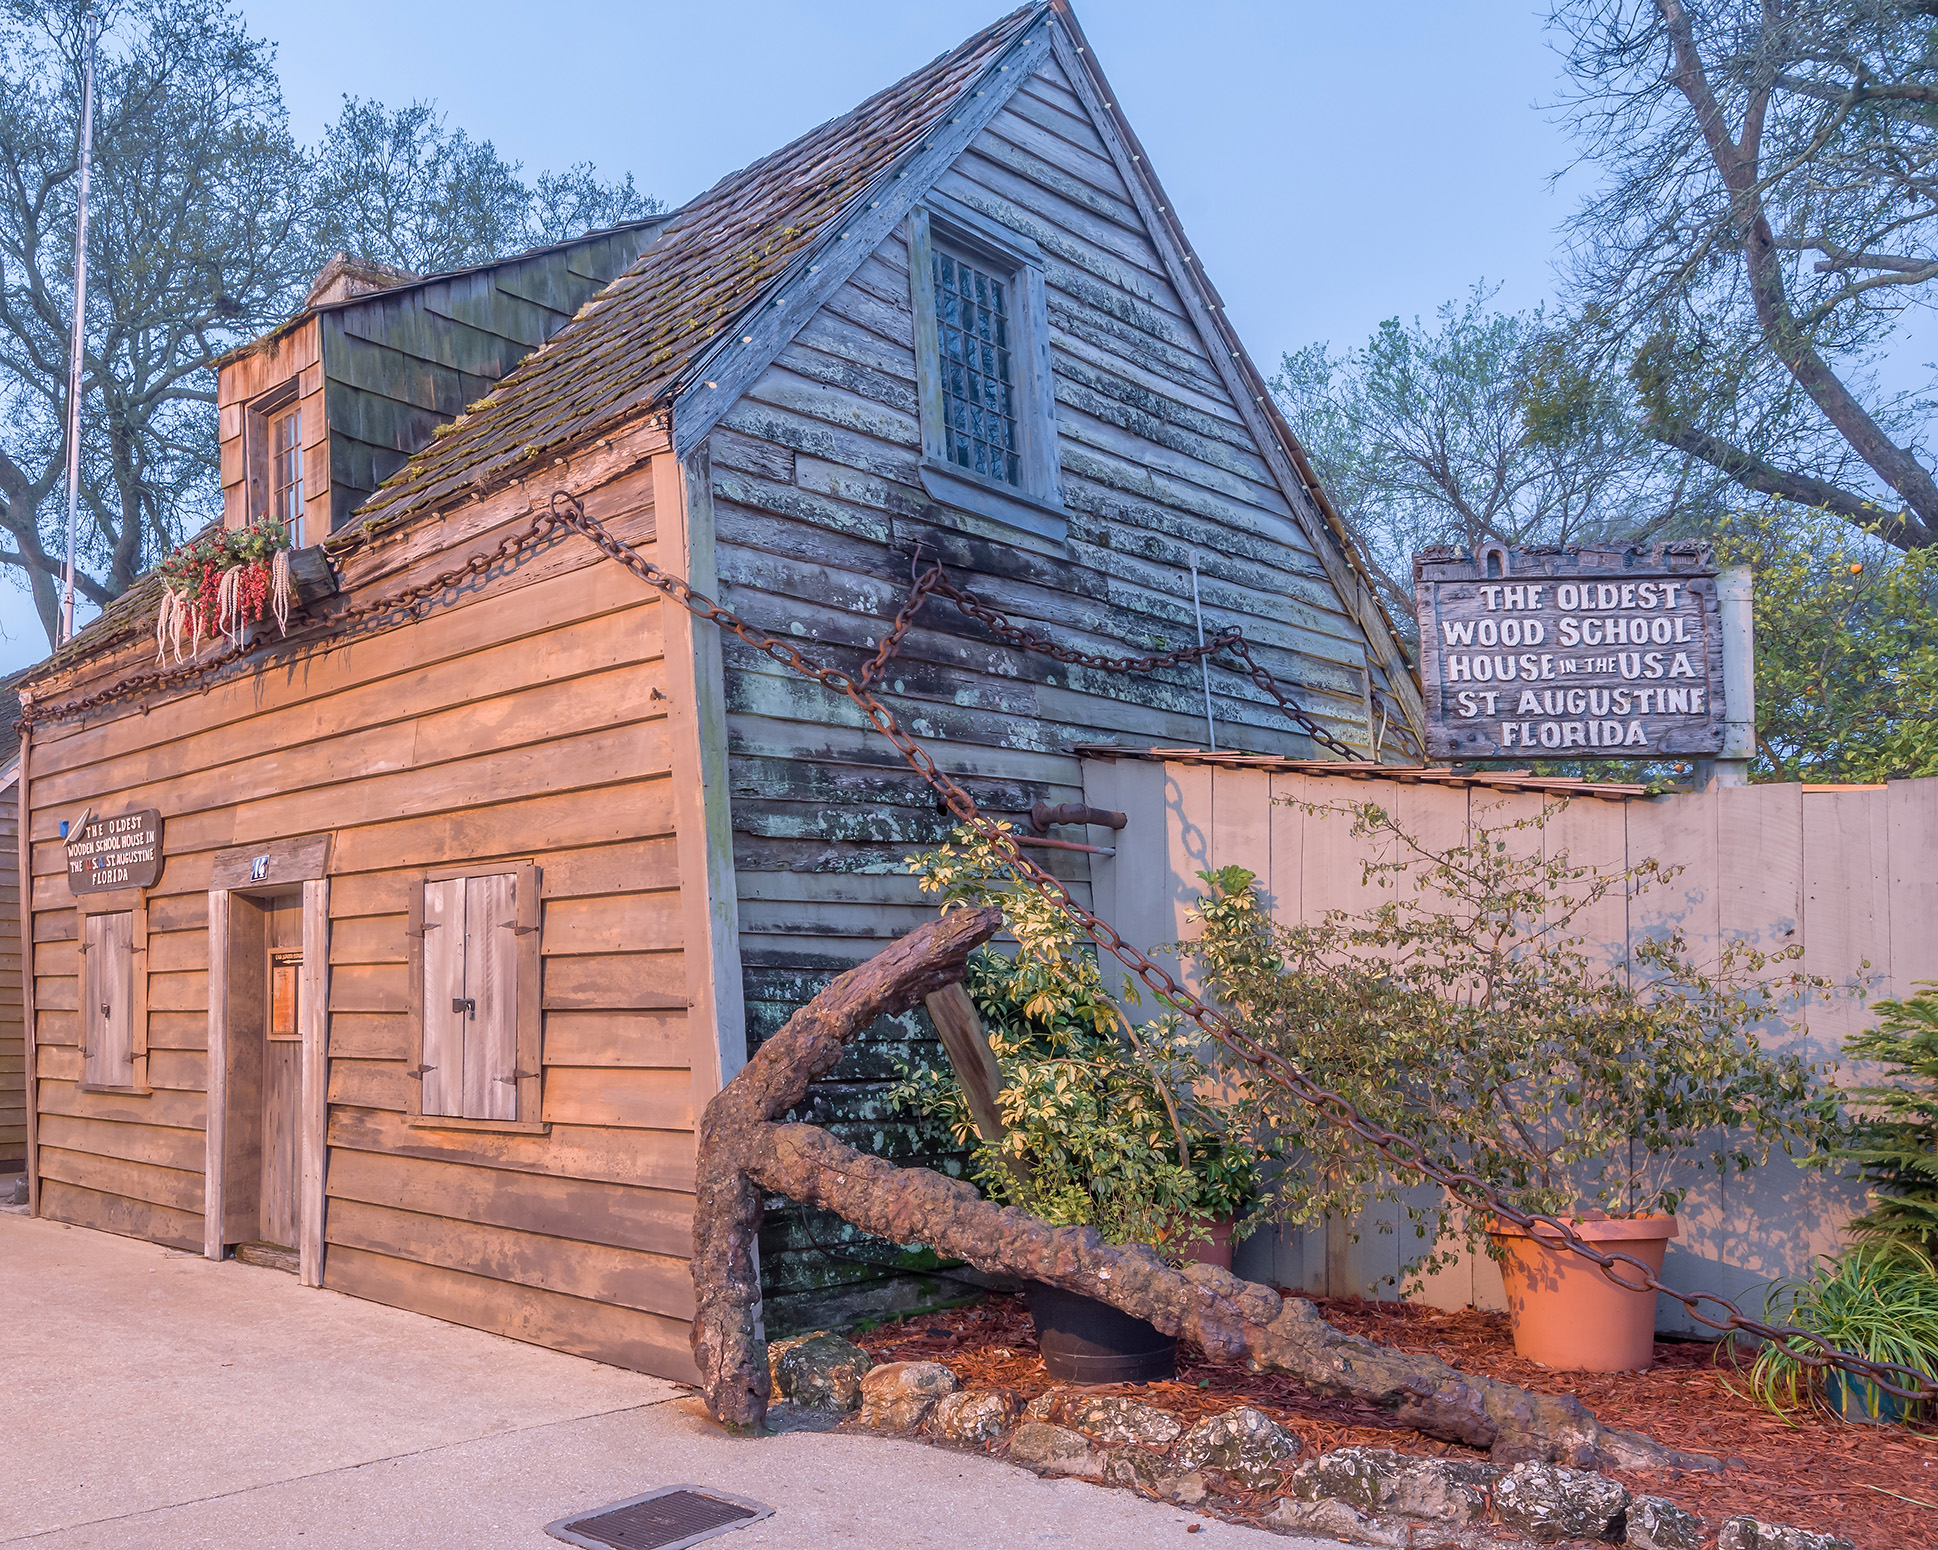 """The oldest wood school house in the USA"" sign hangs outside a tiny ancient building, representing education practices of the past that still present barriers today."